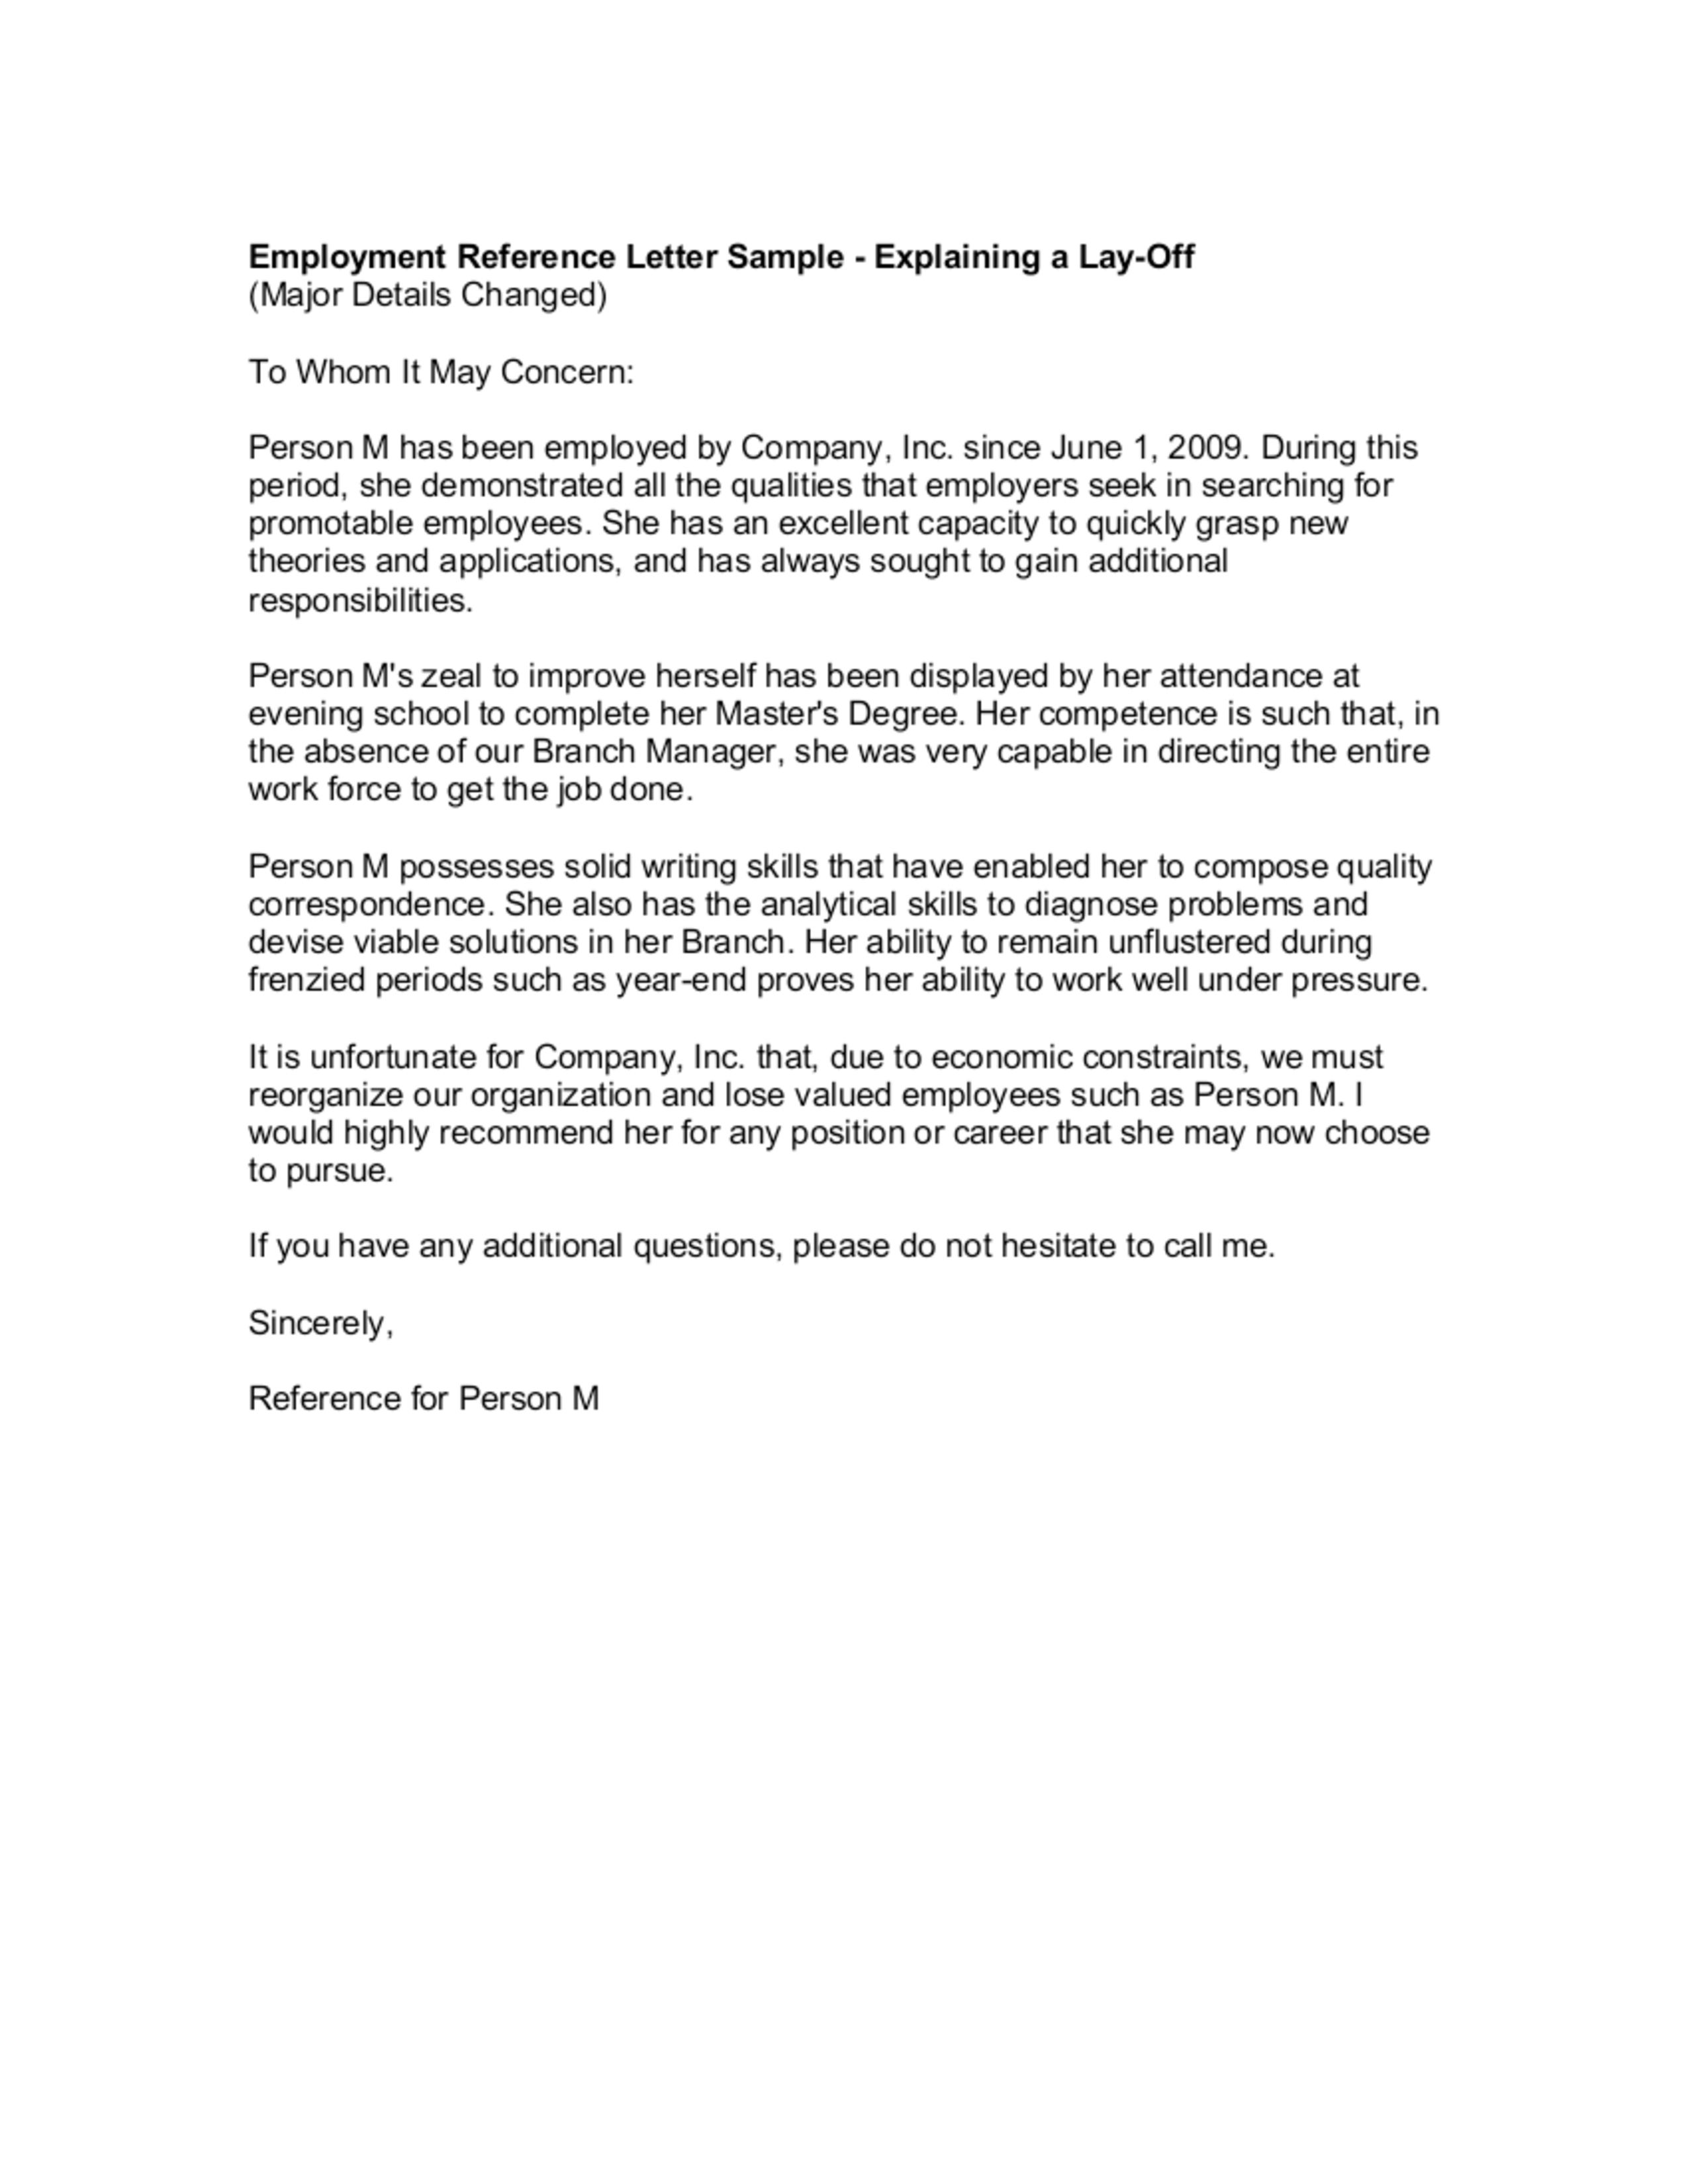 Everything You Need To Know About Recommendation Letter Template Professional Reference Letter Reference Letter Reference Letter Template Recommendation letter sample from employer